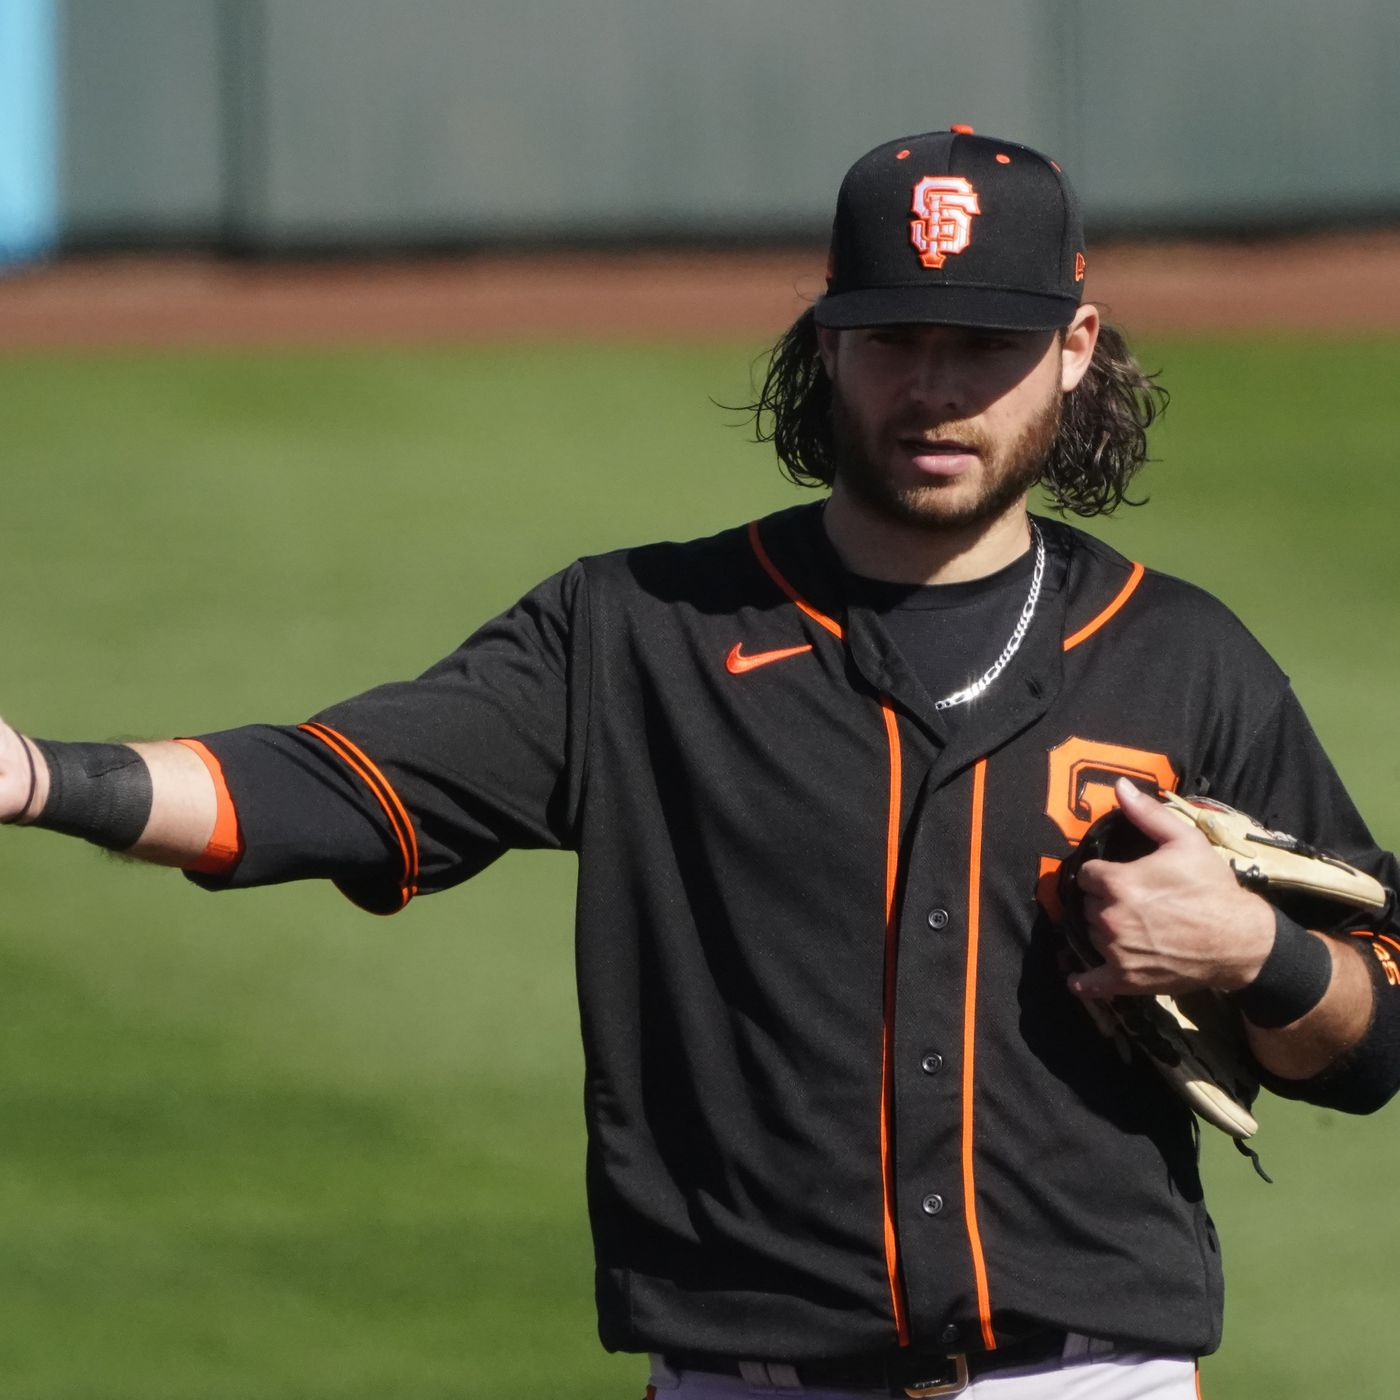 SF Giants: What's the best part of Spring Training? - McCovey ...